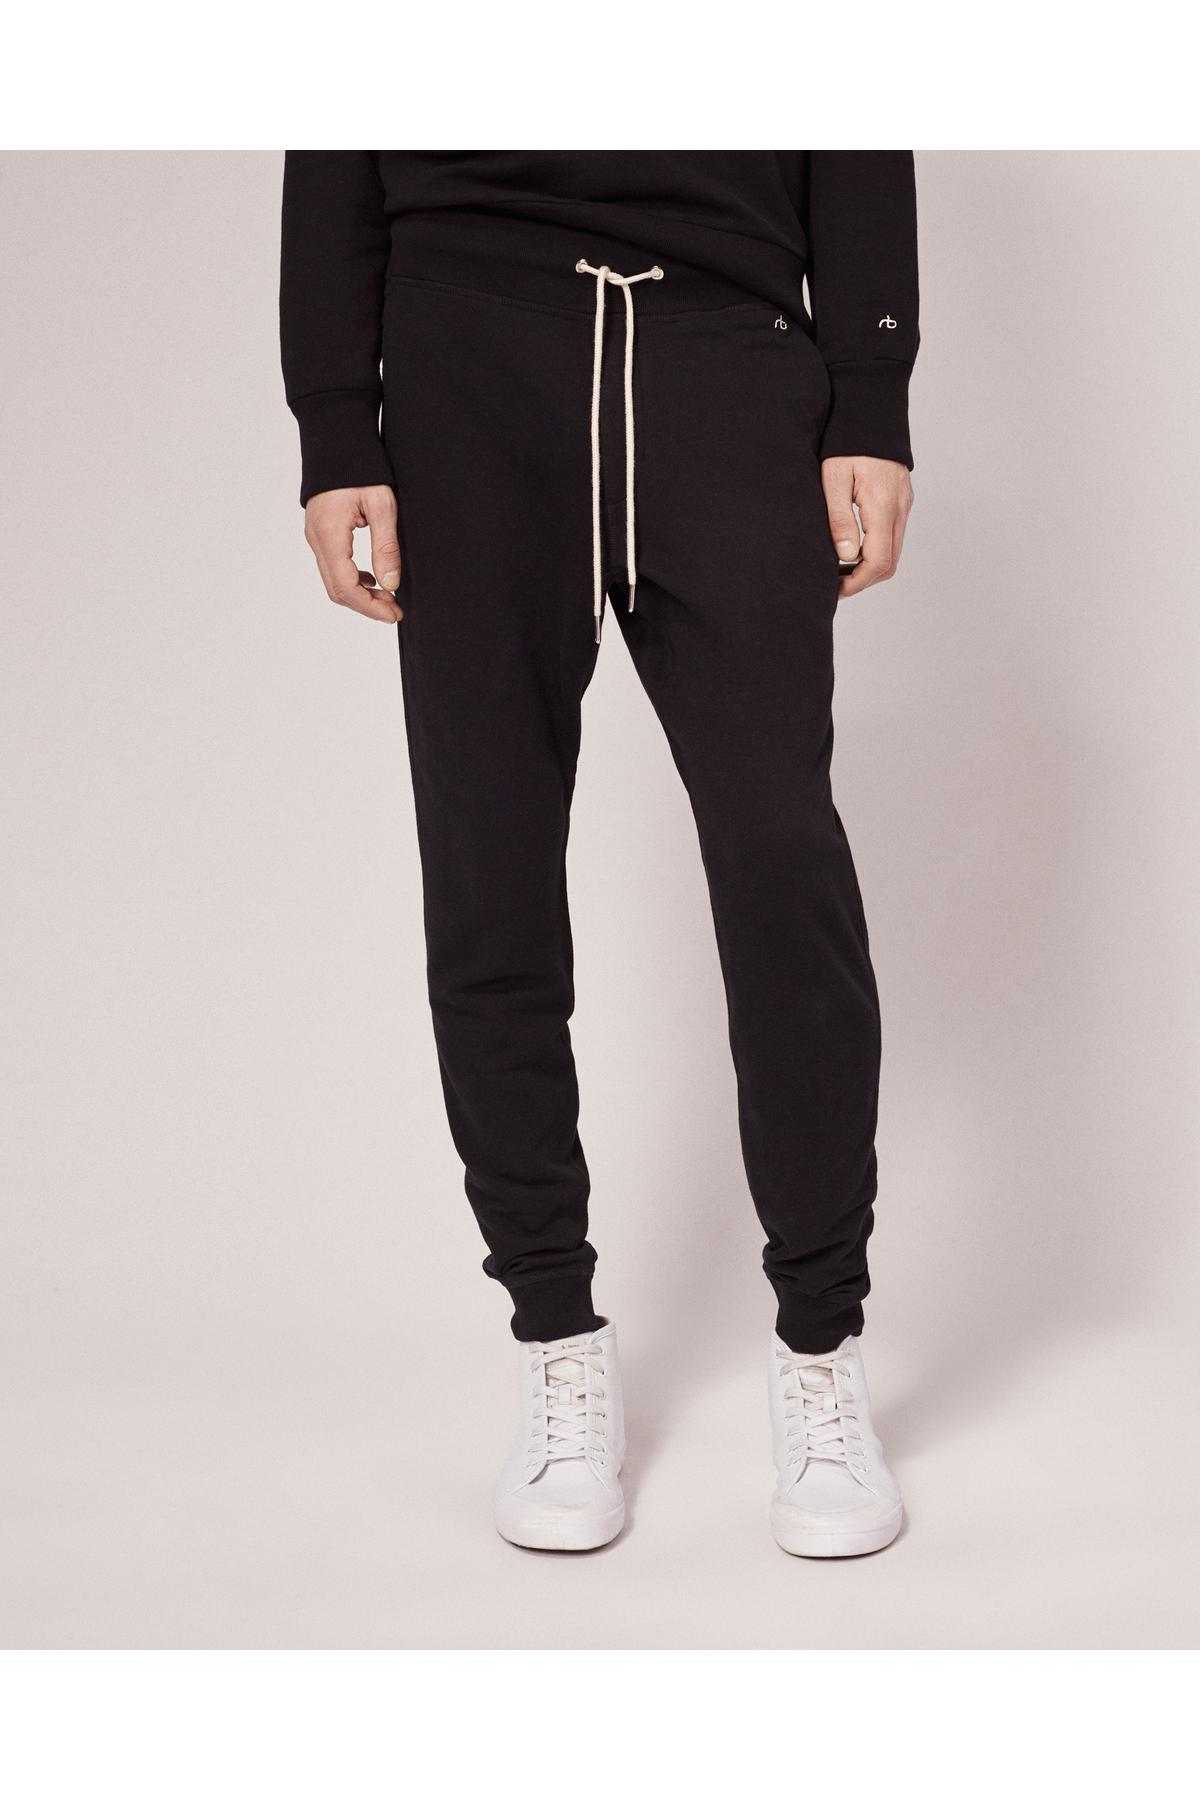 RAG & BONE STANDARD ISSUE SWEATPANT